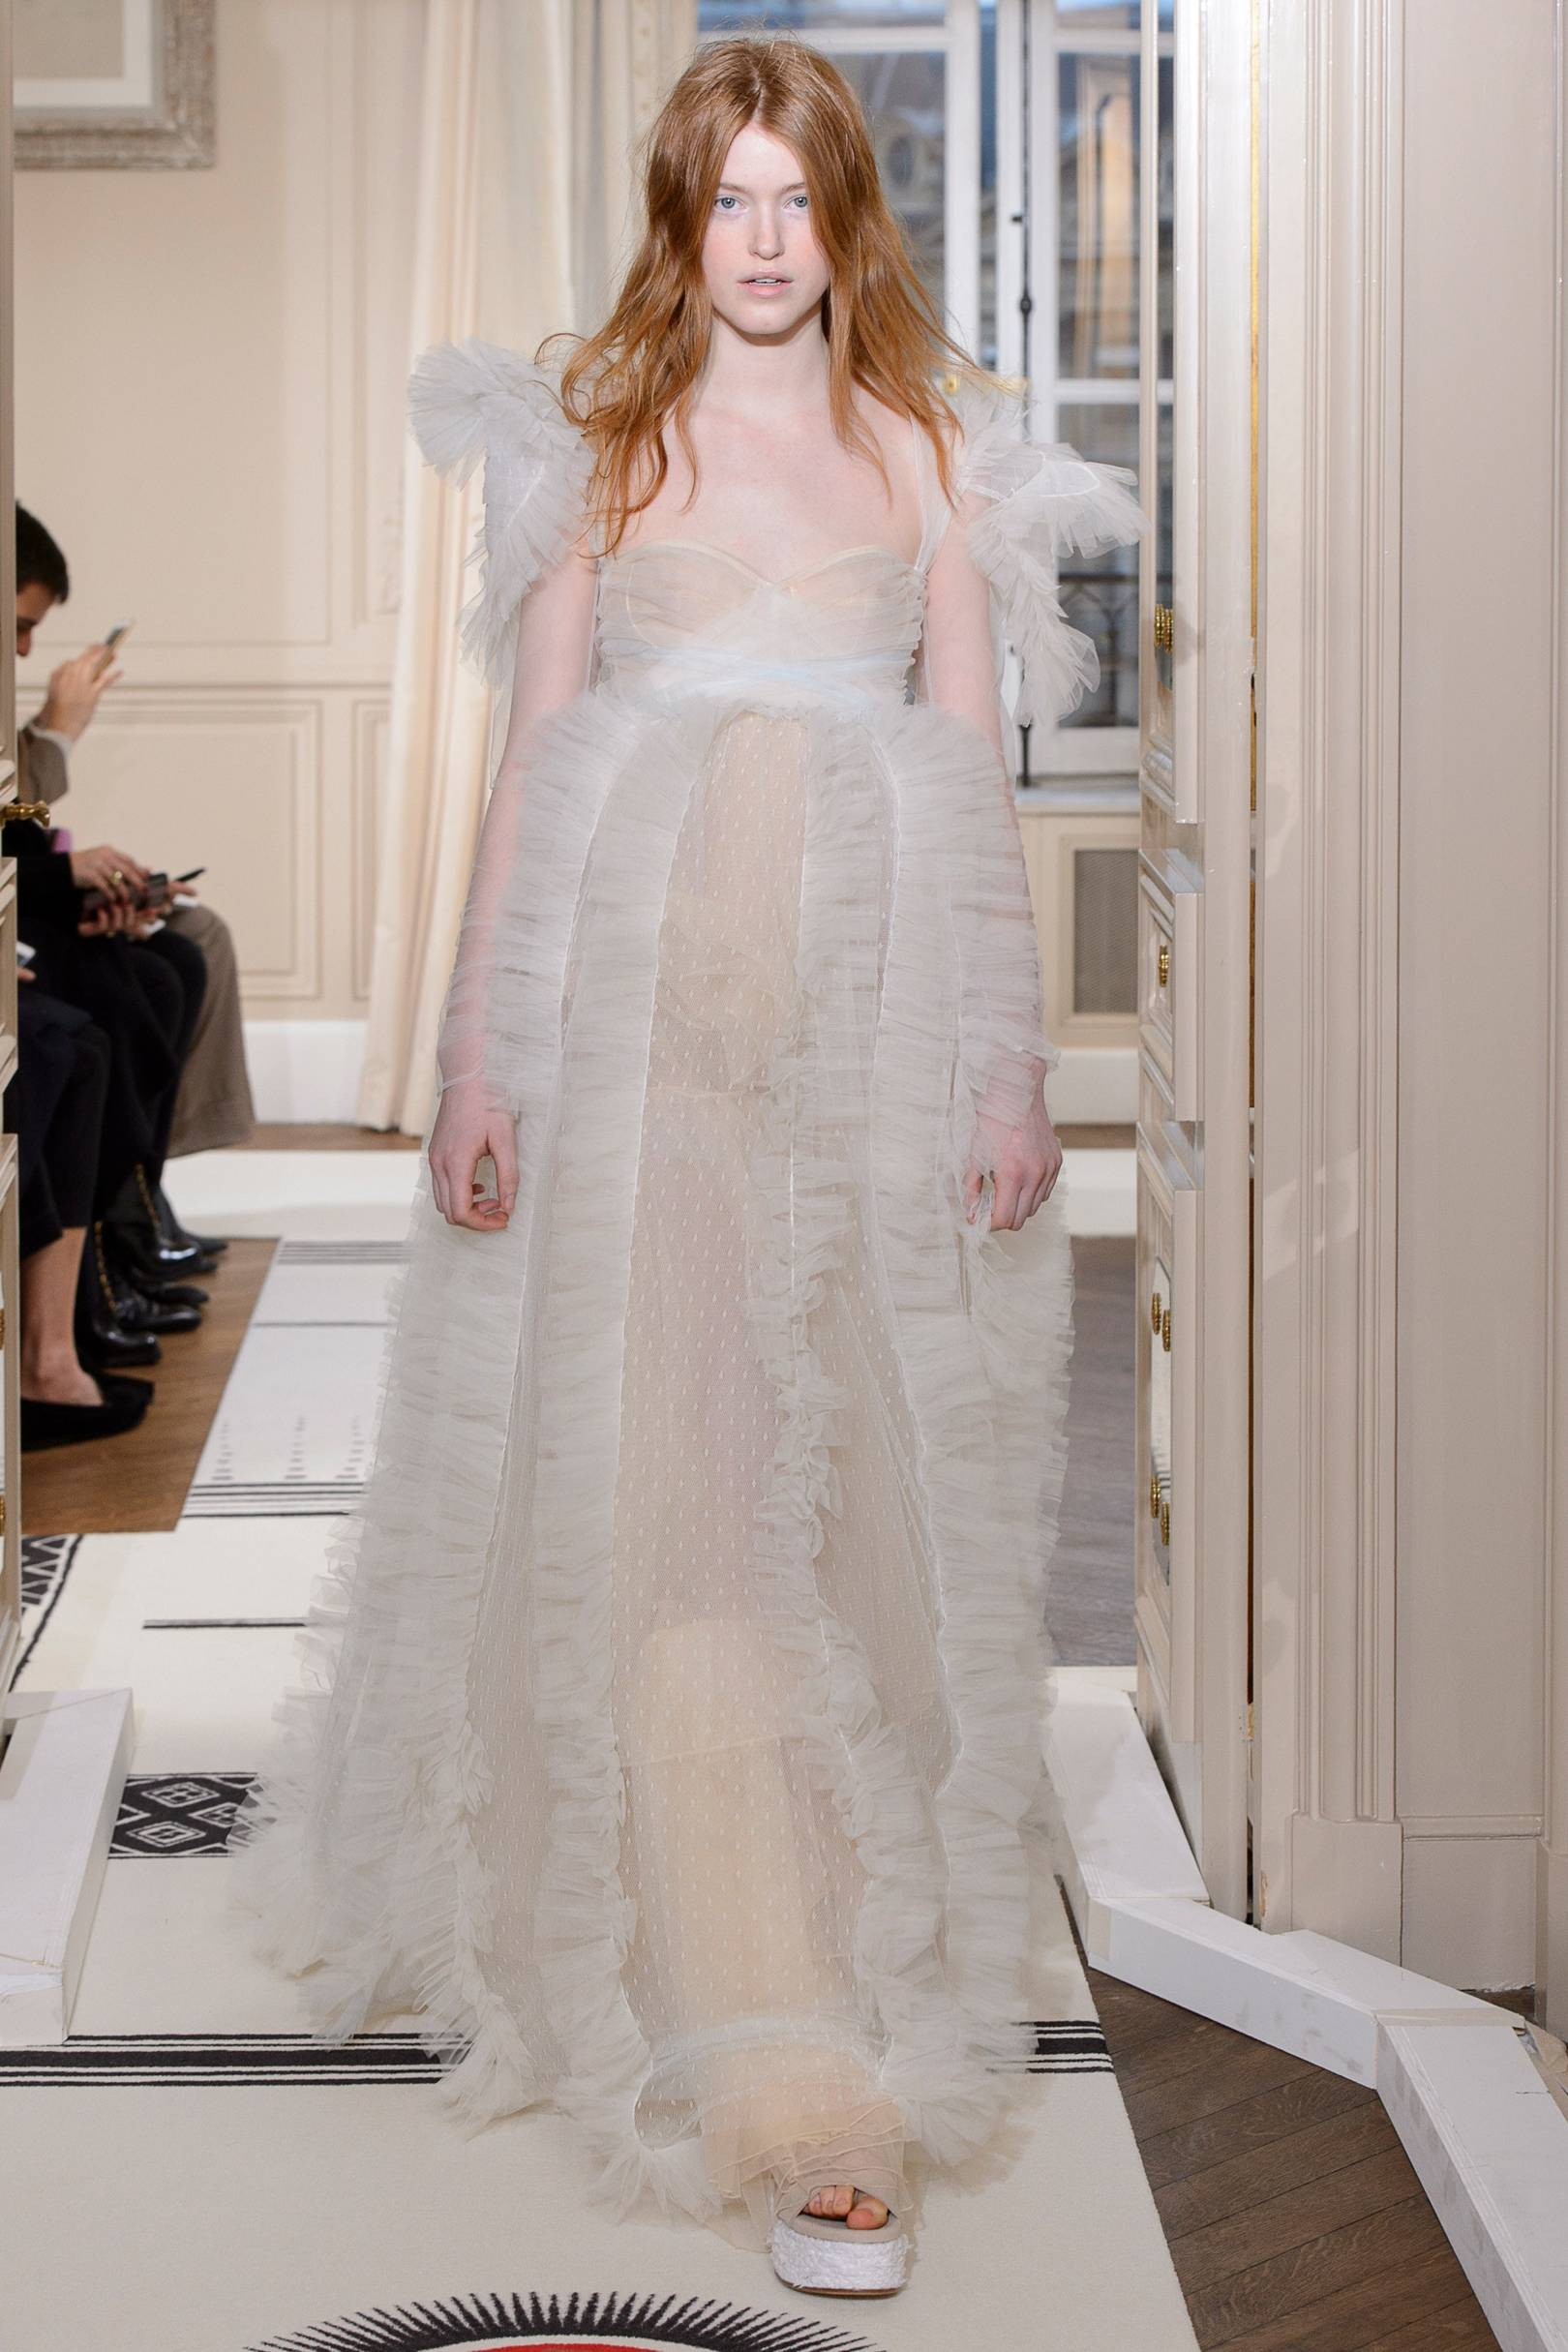 The Best Wedding Dresses From The Spring/Summer 2018 Couture Shows ...